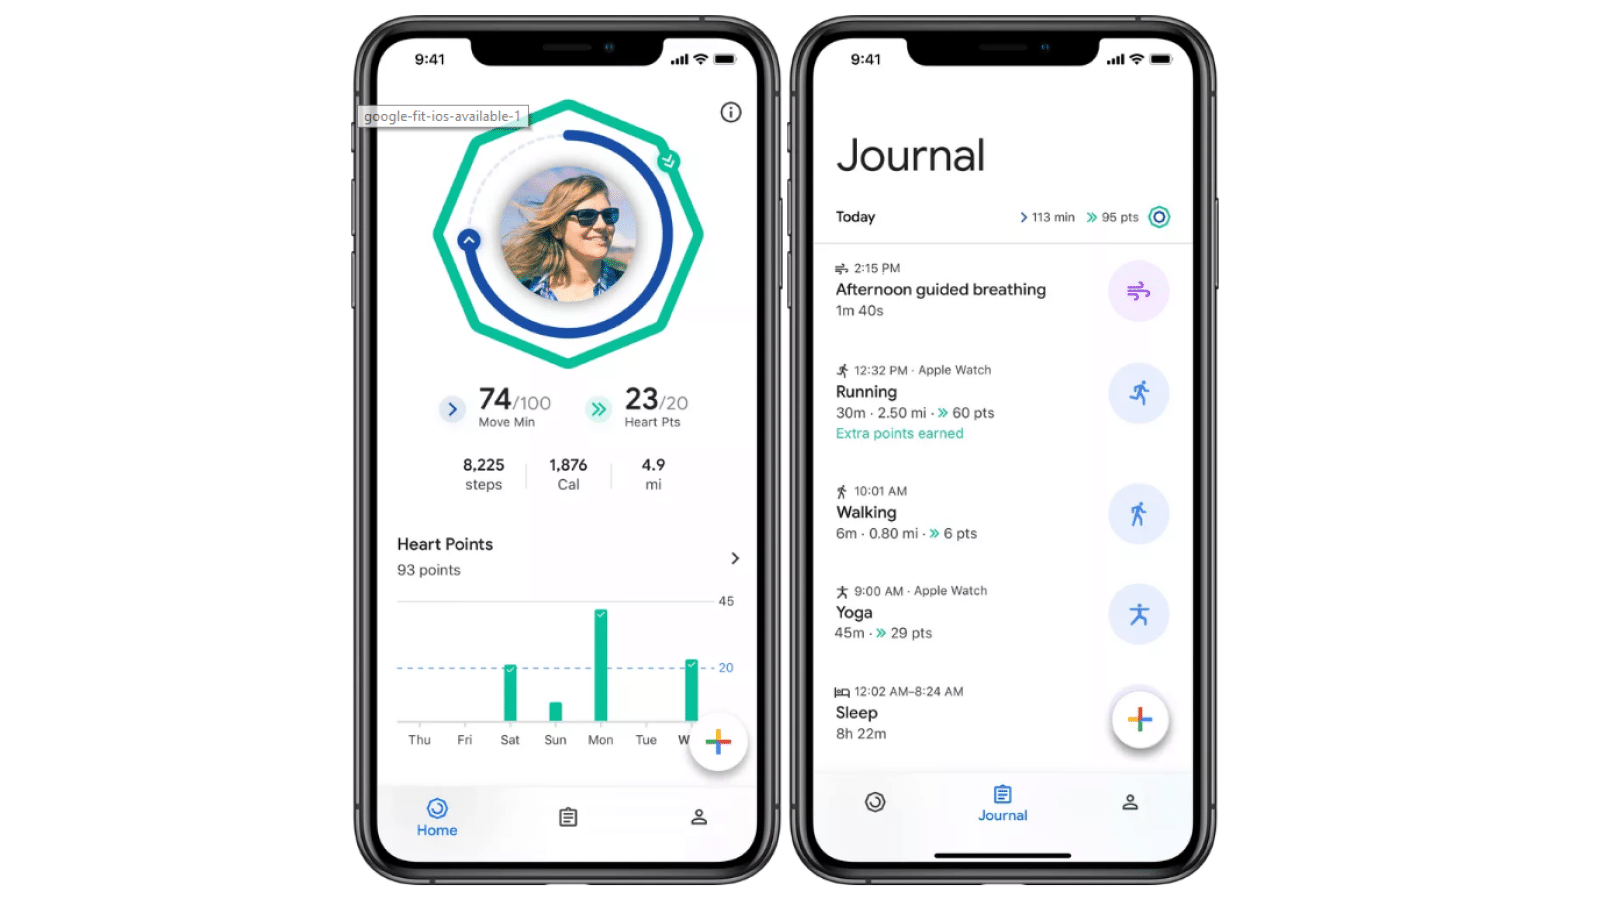 google fit on ios